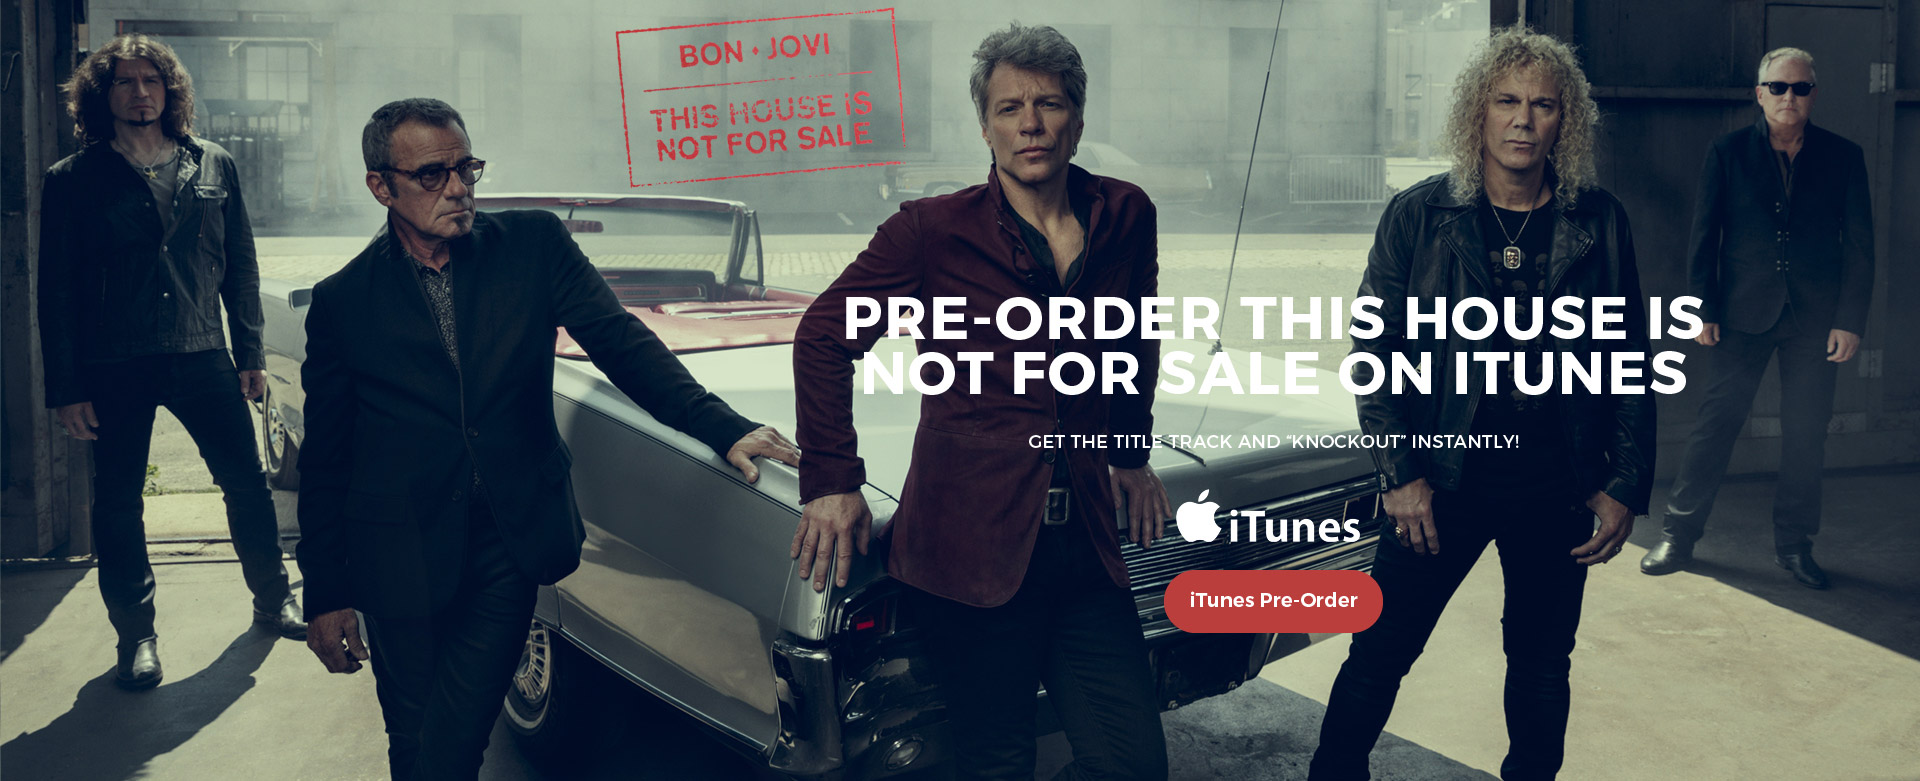 Pre-order Bon Jovi new album with Phil X on 4 songs